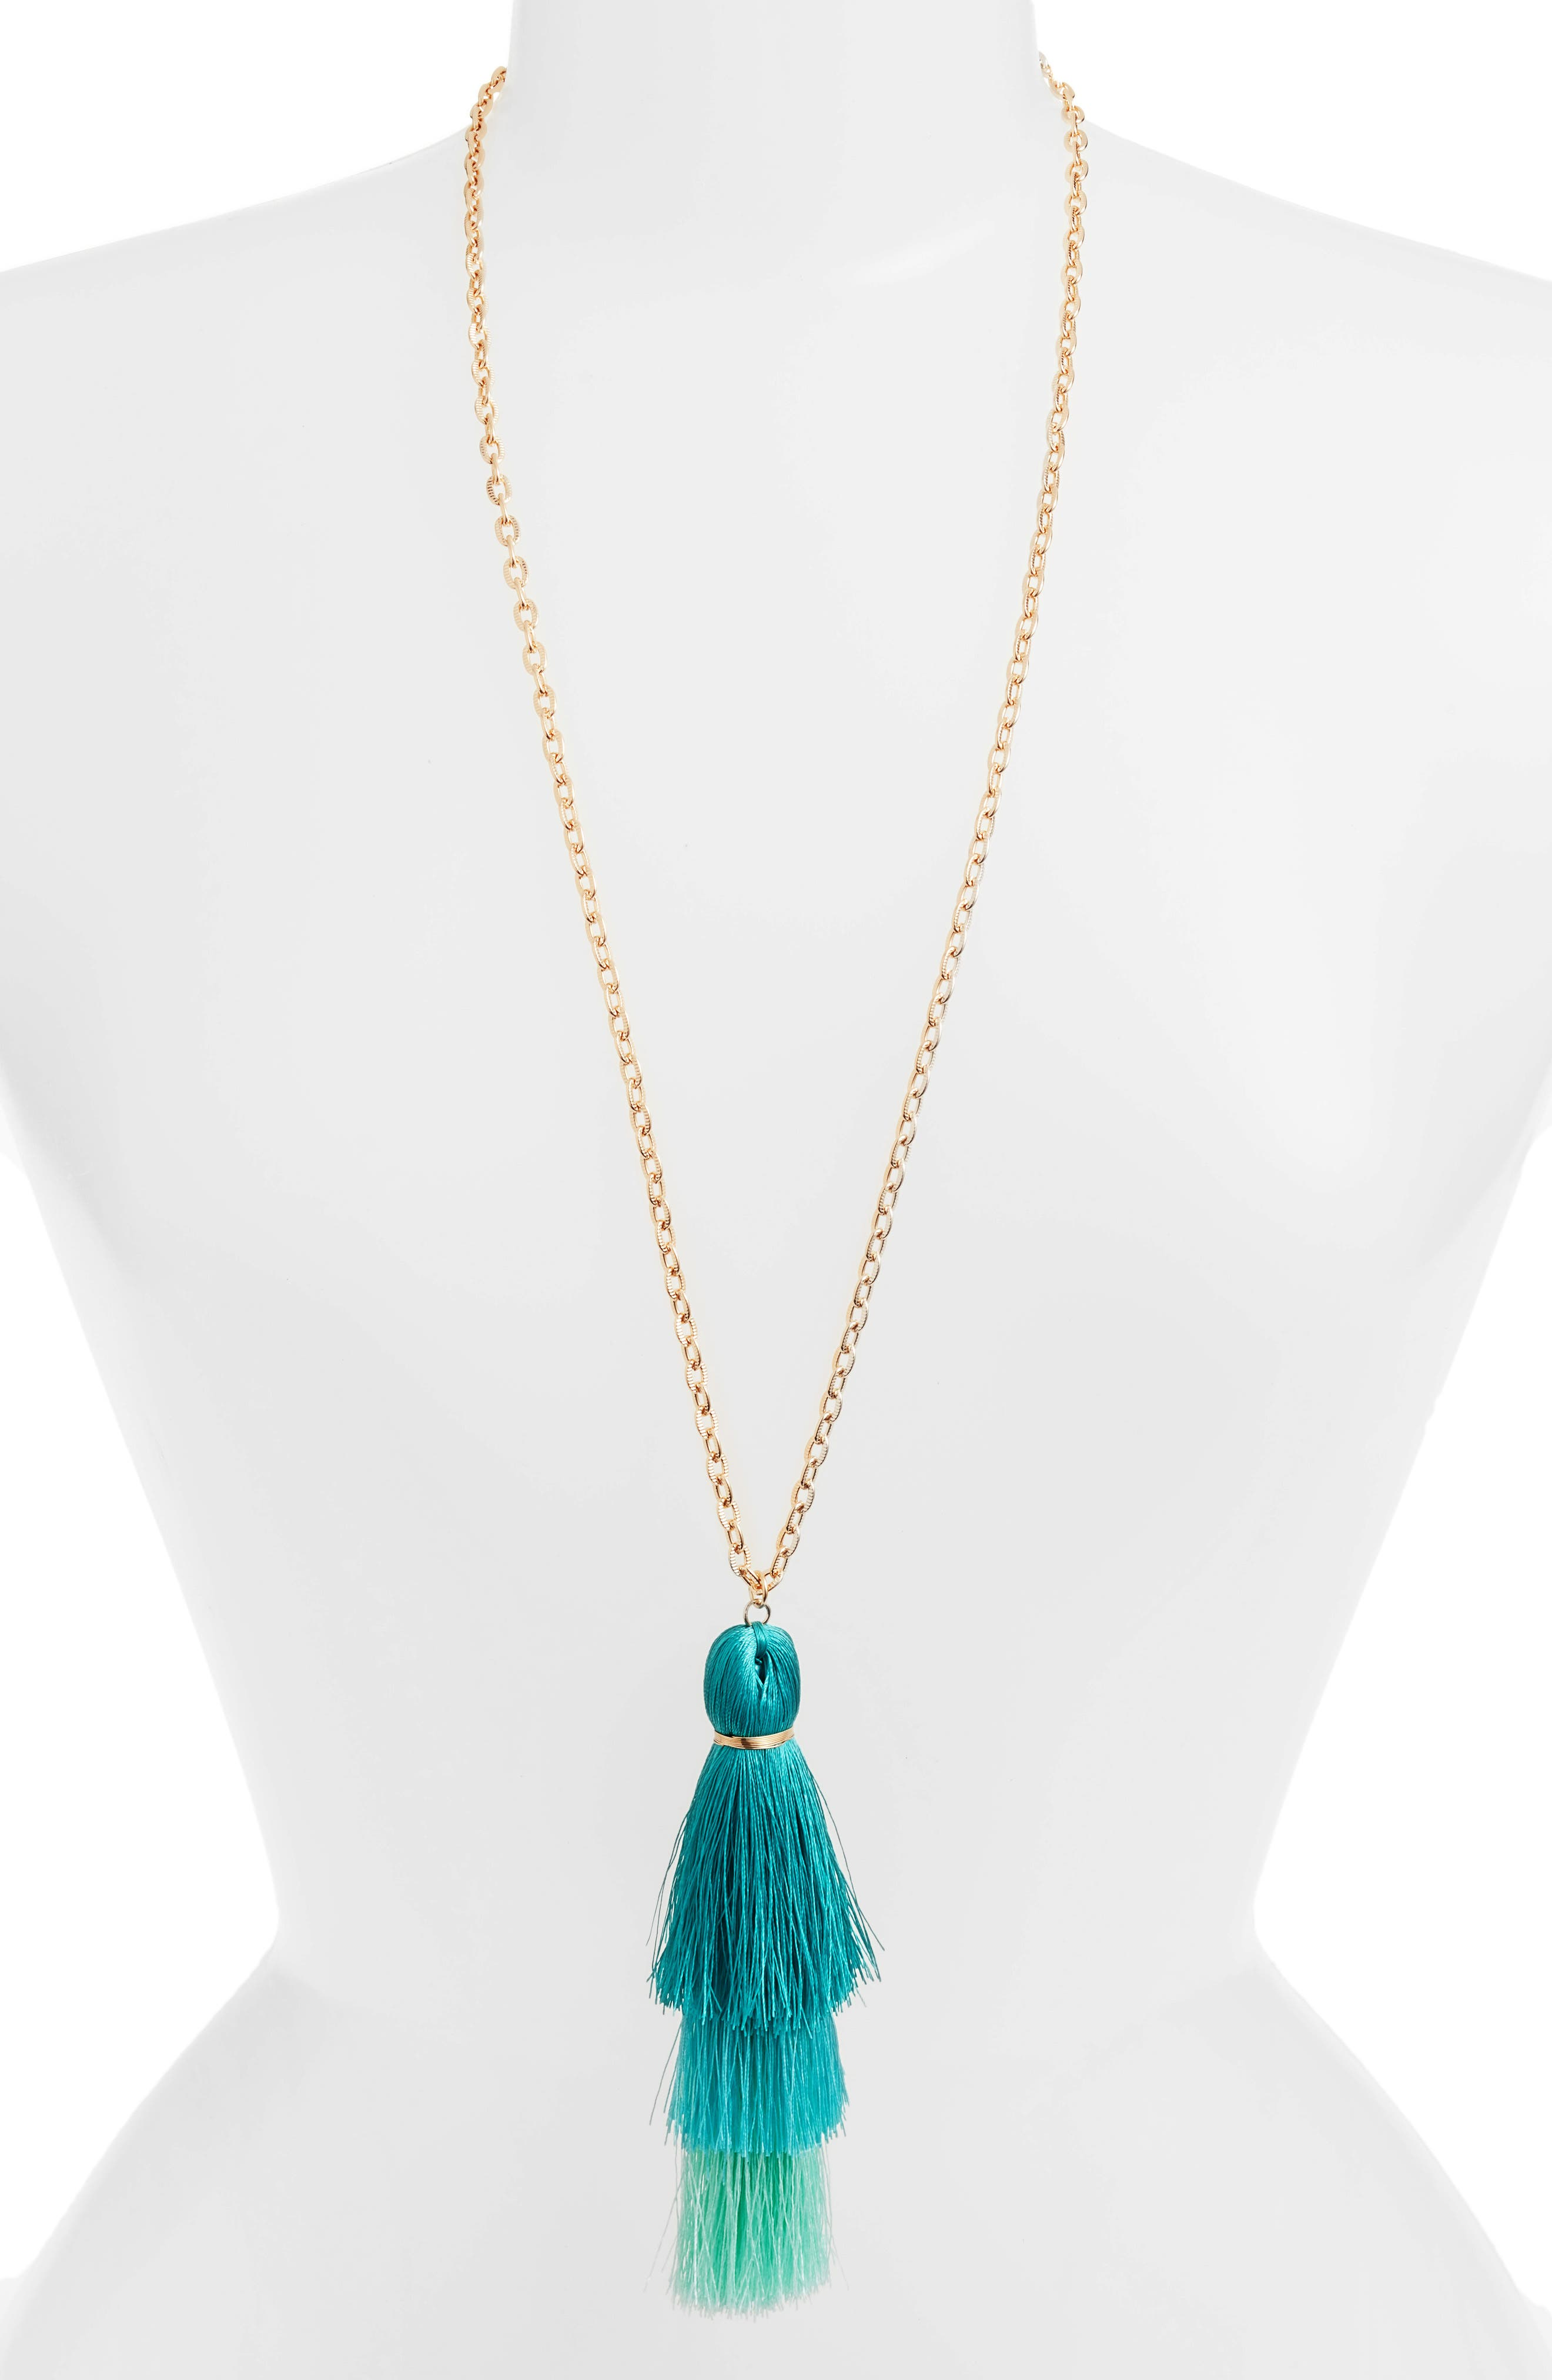 STELLA + RUBY Tiered Tassel Necklace, Main, color, 710